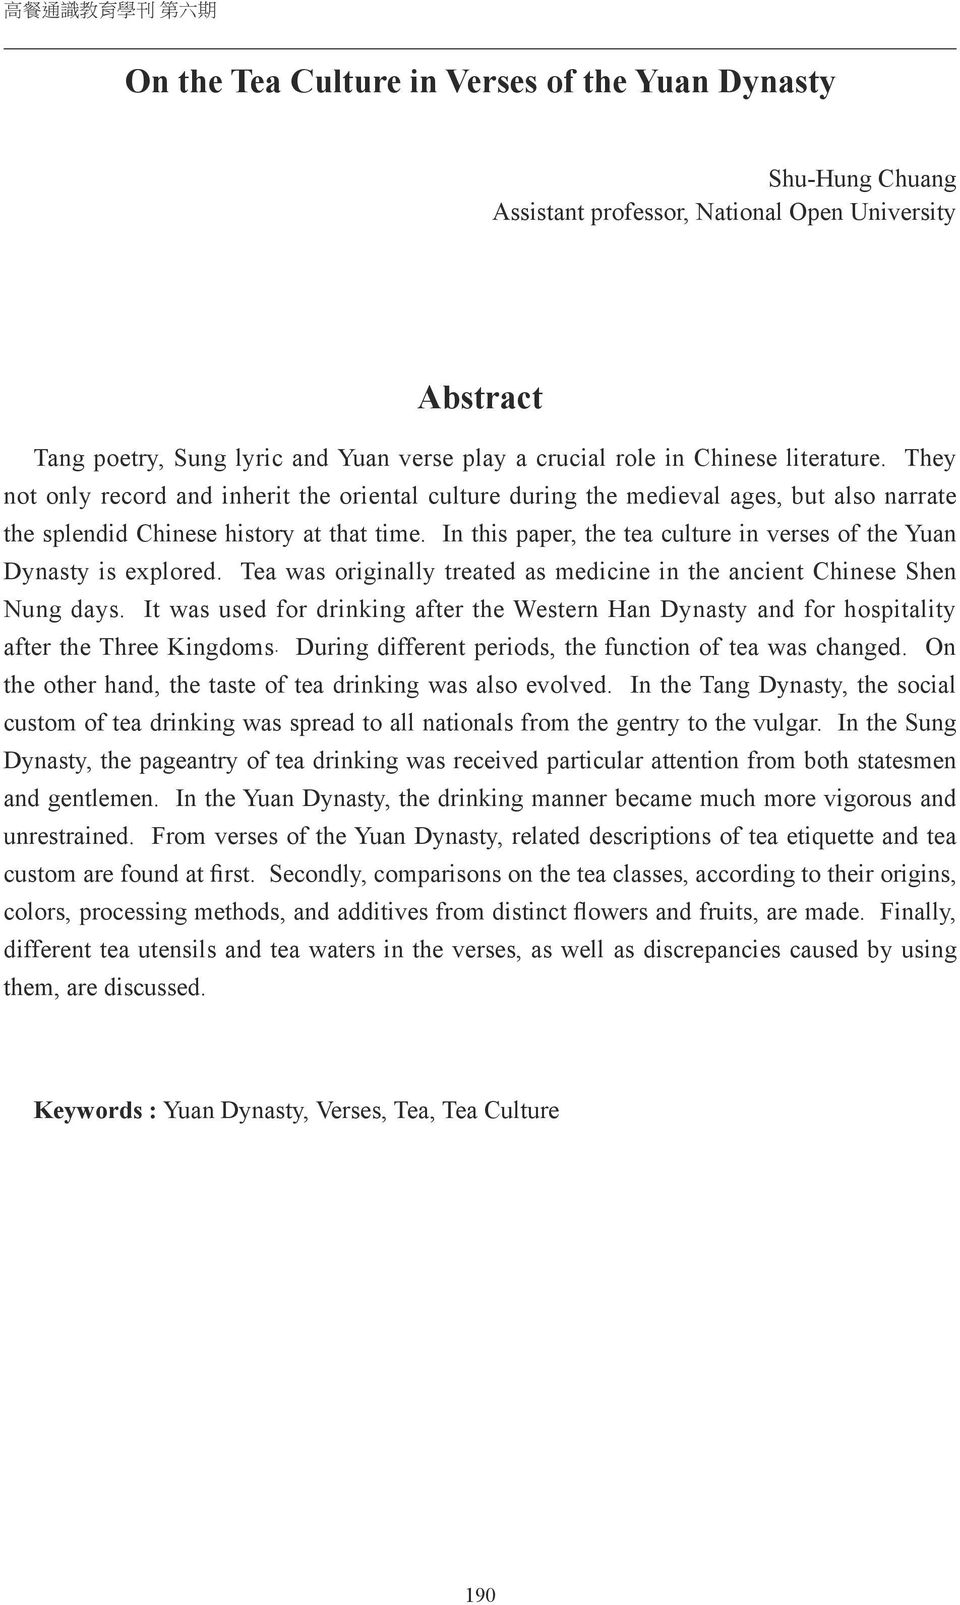 In this paper, the tea culture in verses of the Yuan Dynasty is explored. Tea was originally treated as medicine in the ancient Chinese Shen Nung days.